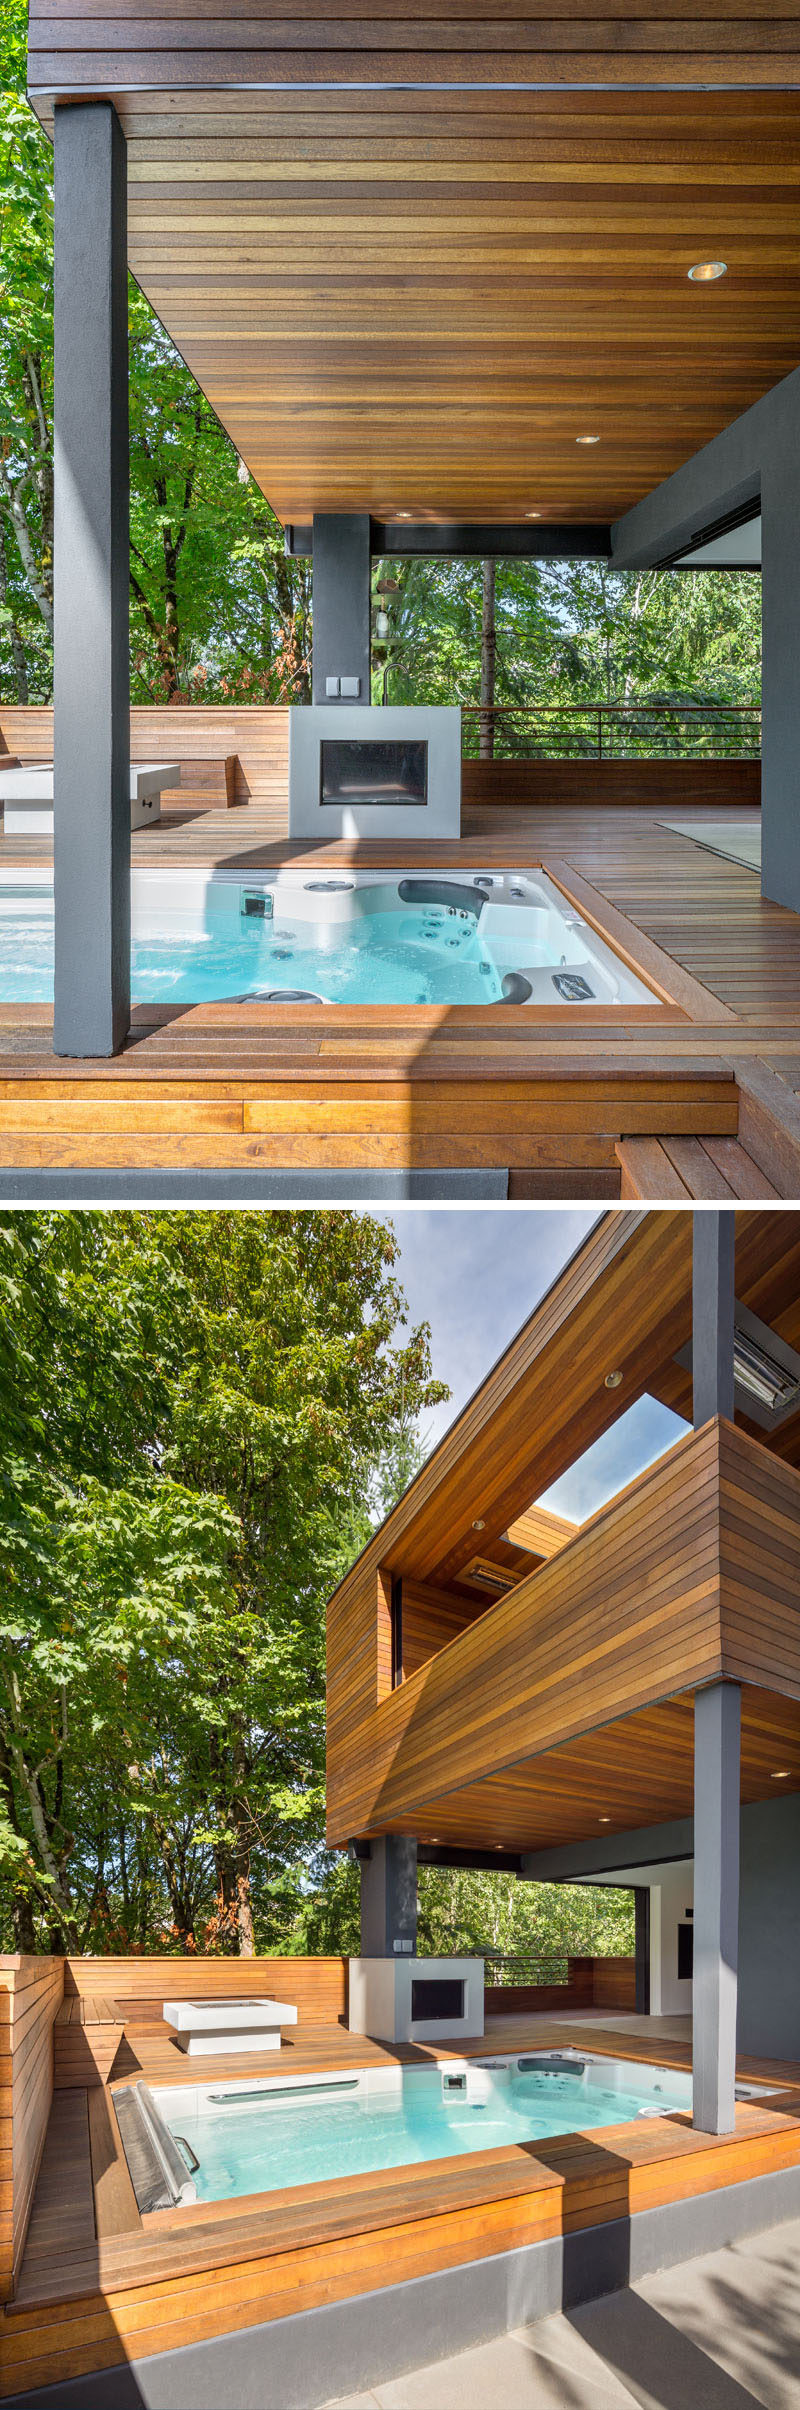 This modern house has an outdoor area with a built-in TV, a custom fire pit with wood seating and a therapeutic swim spa. #OutdoorSpace #OutdoorFirepit #Spa